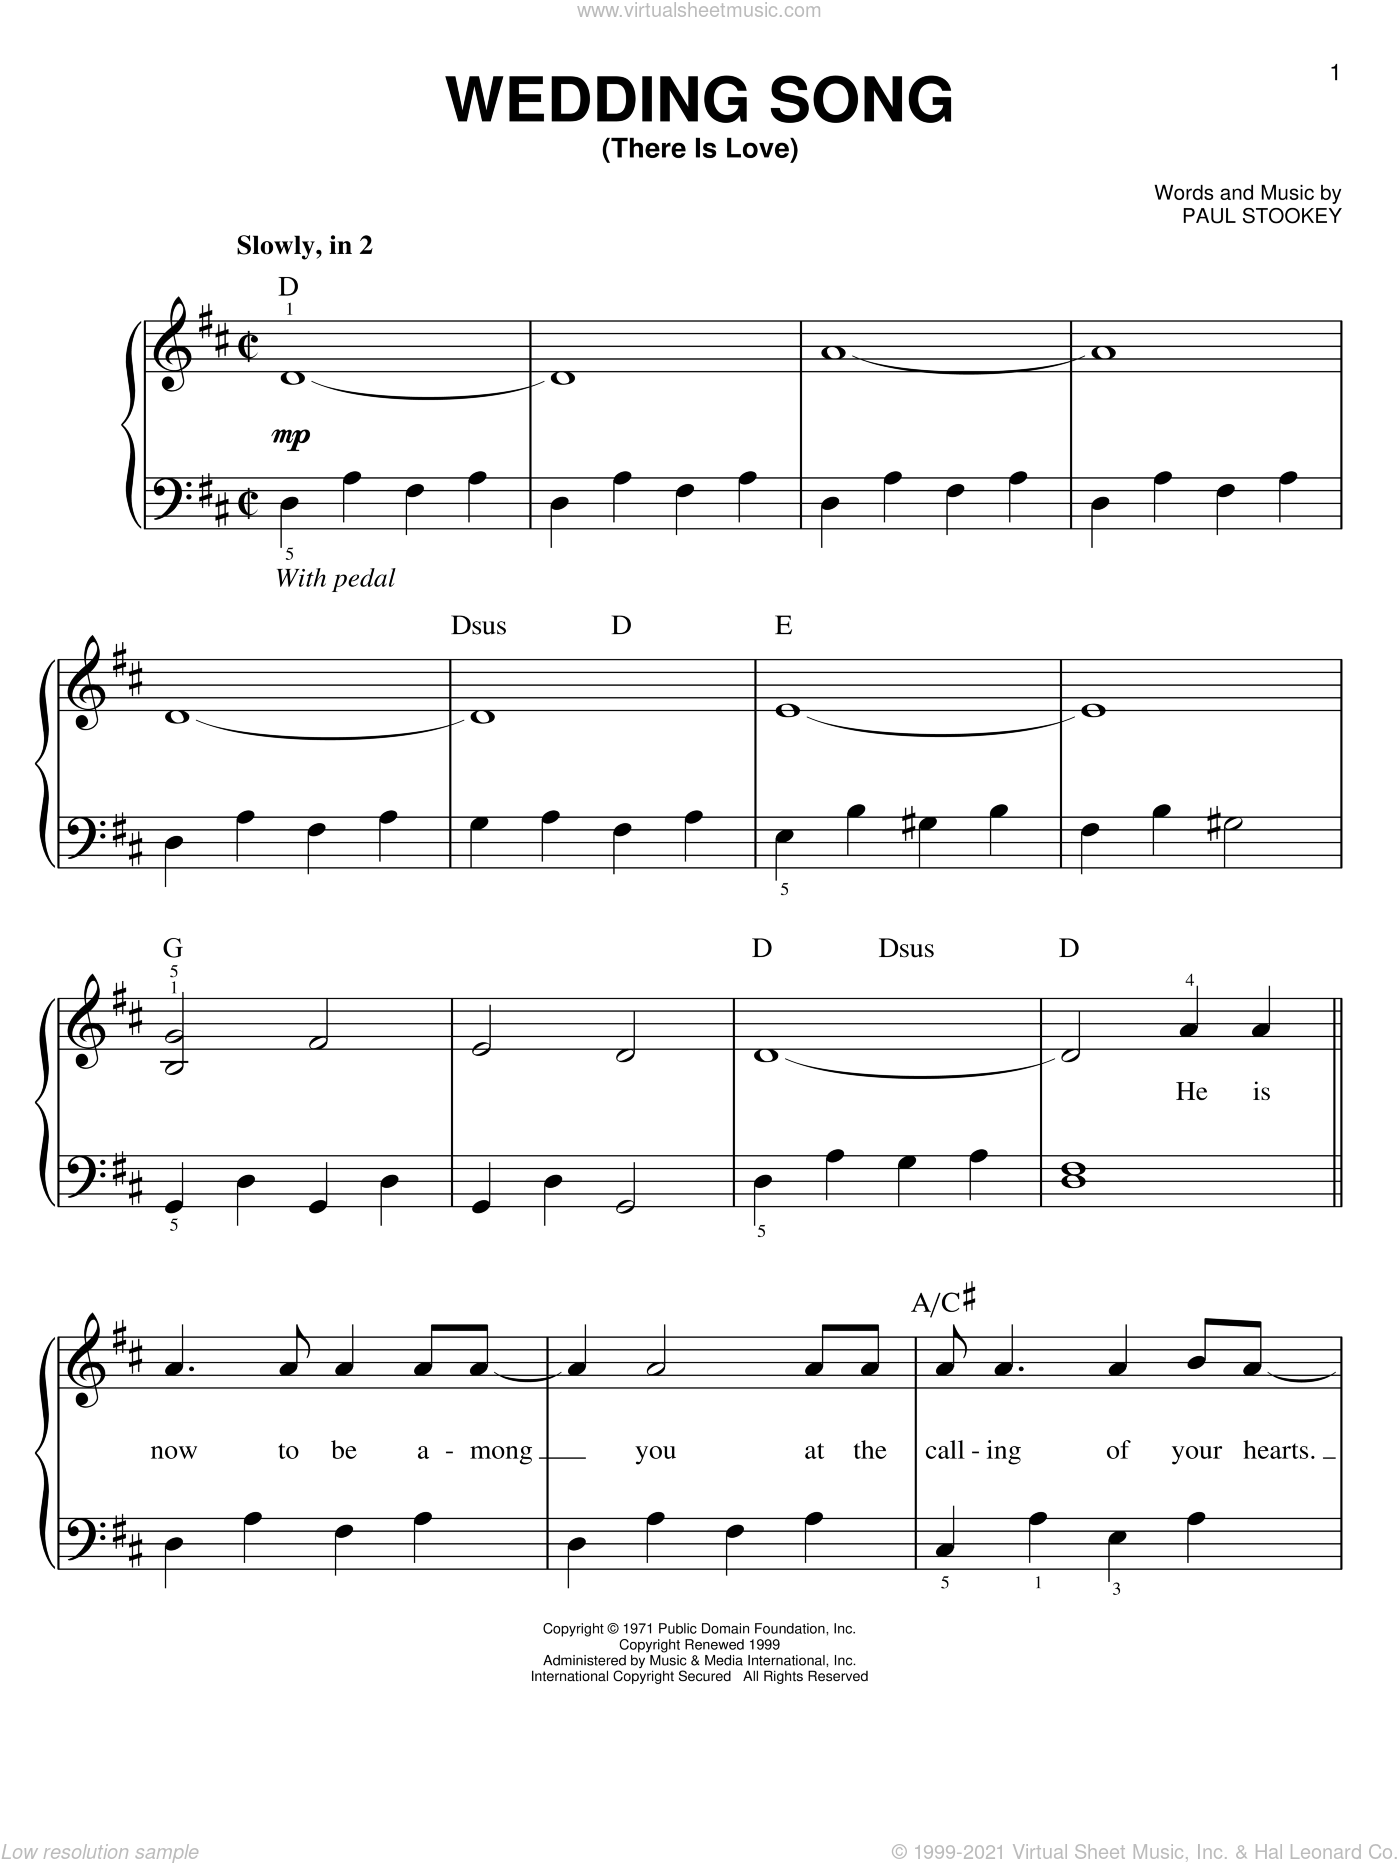 Wedding Song (There Is Love) sheet music for piano solo (chords) by Paul Stookey